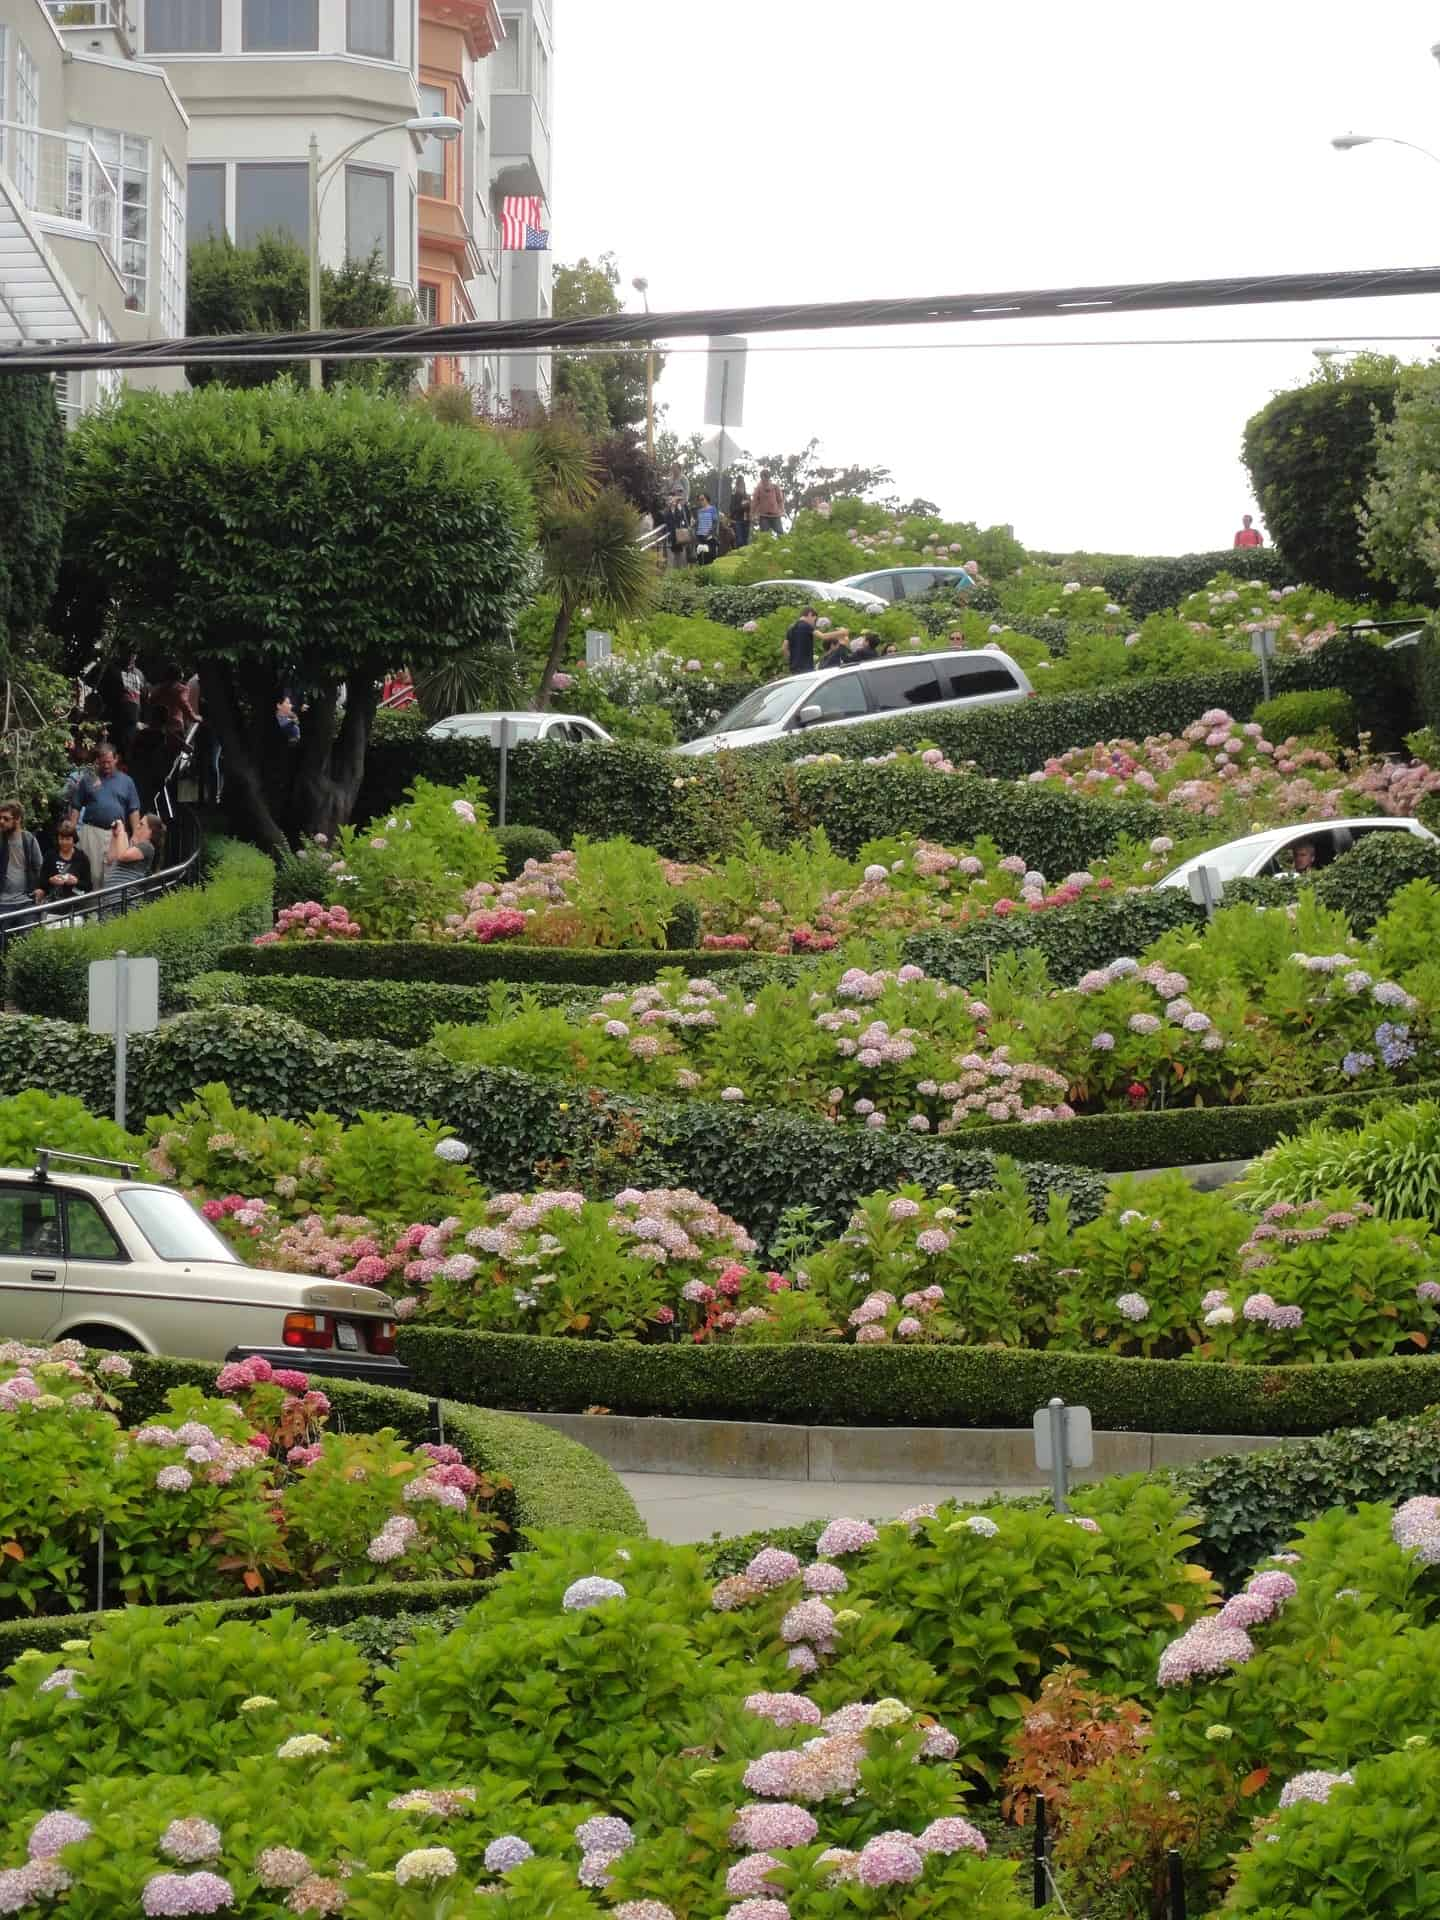 Lombard Street with kids